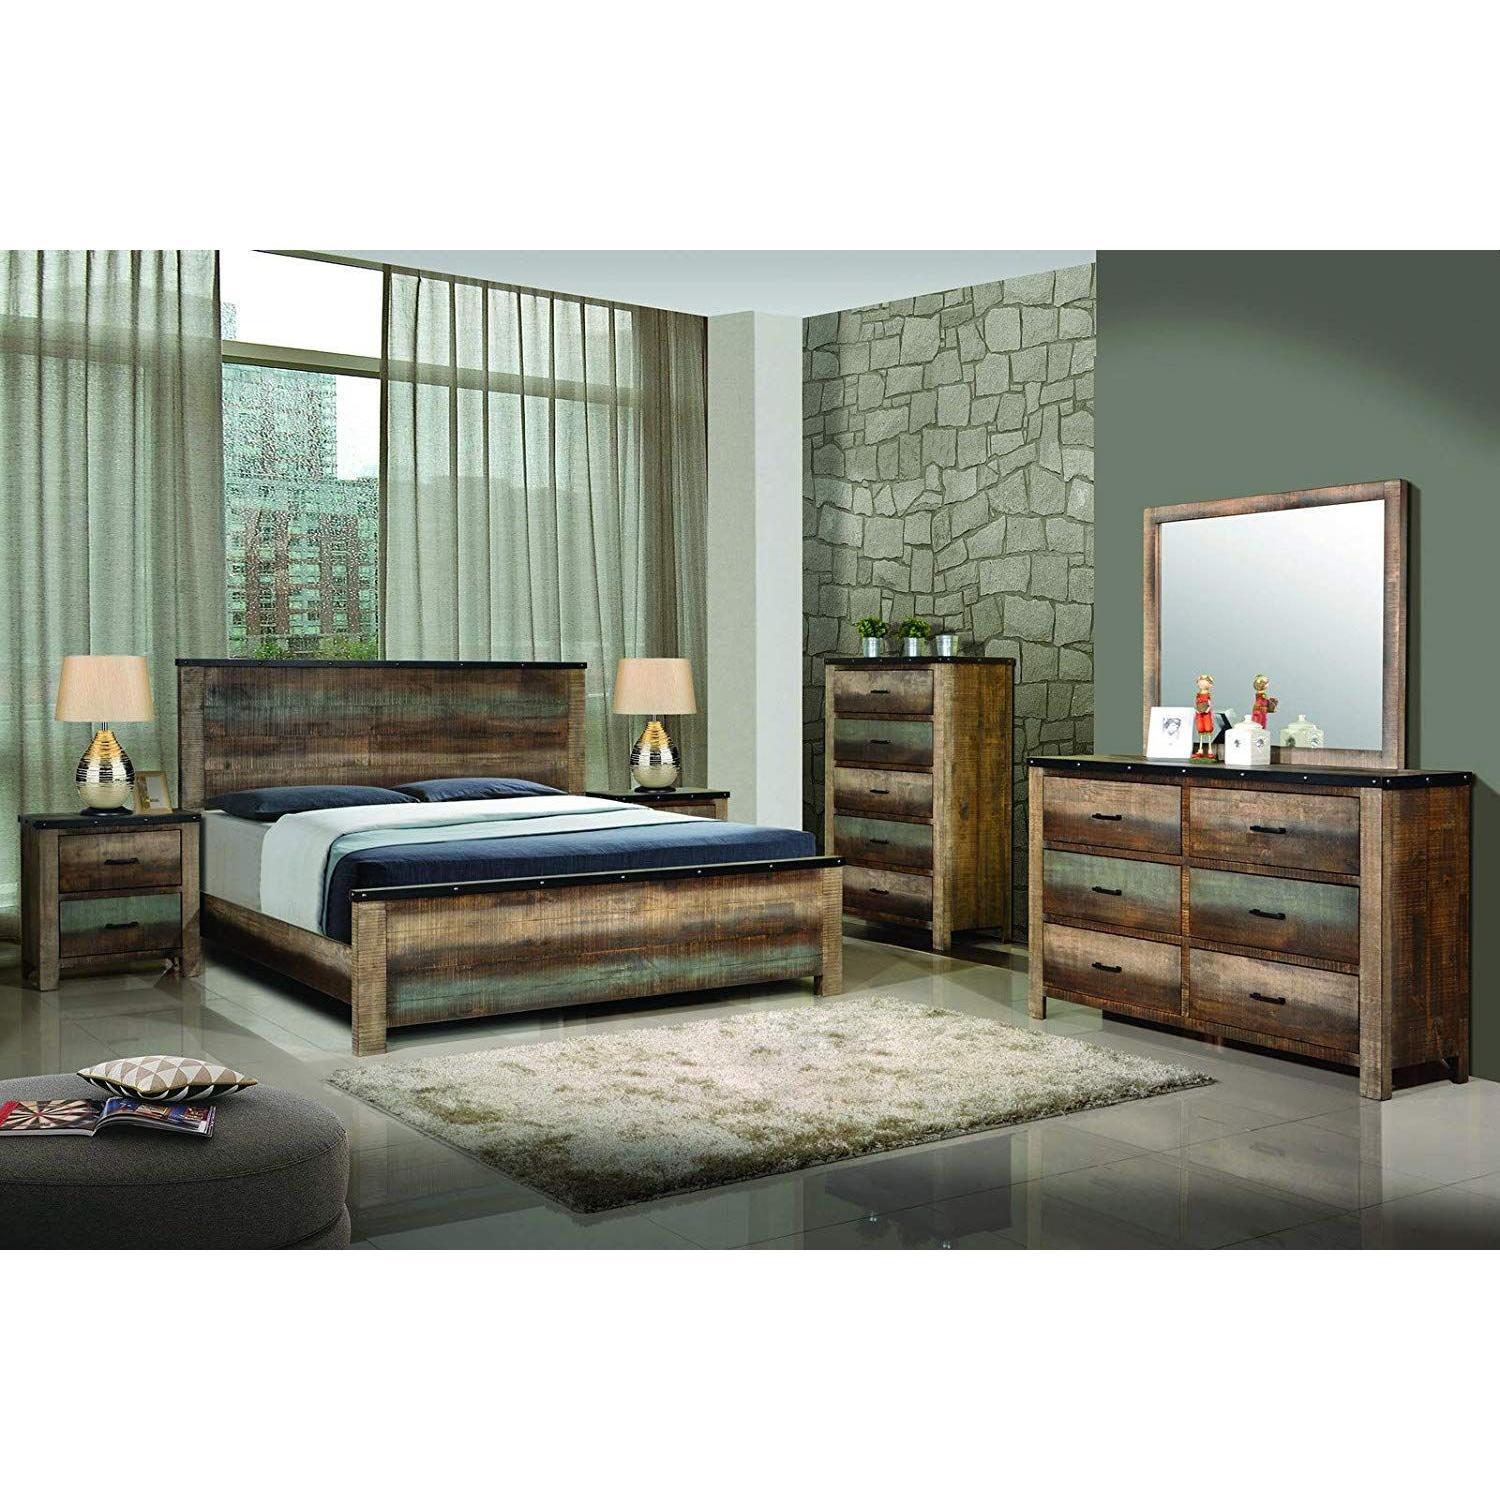 Rustic Style Queen Size Bed in Solid Wood Multi-Tonal Finish - image-3